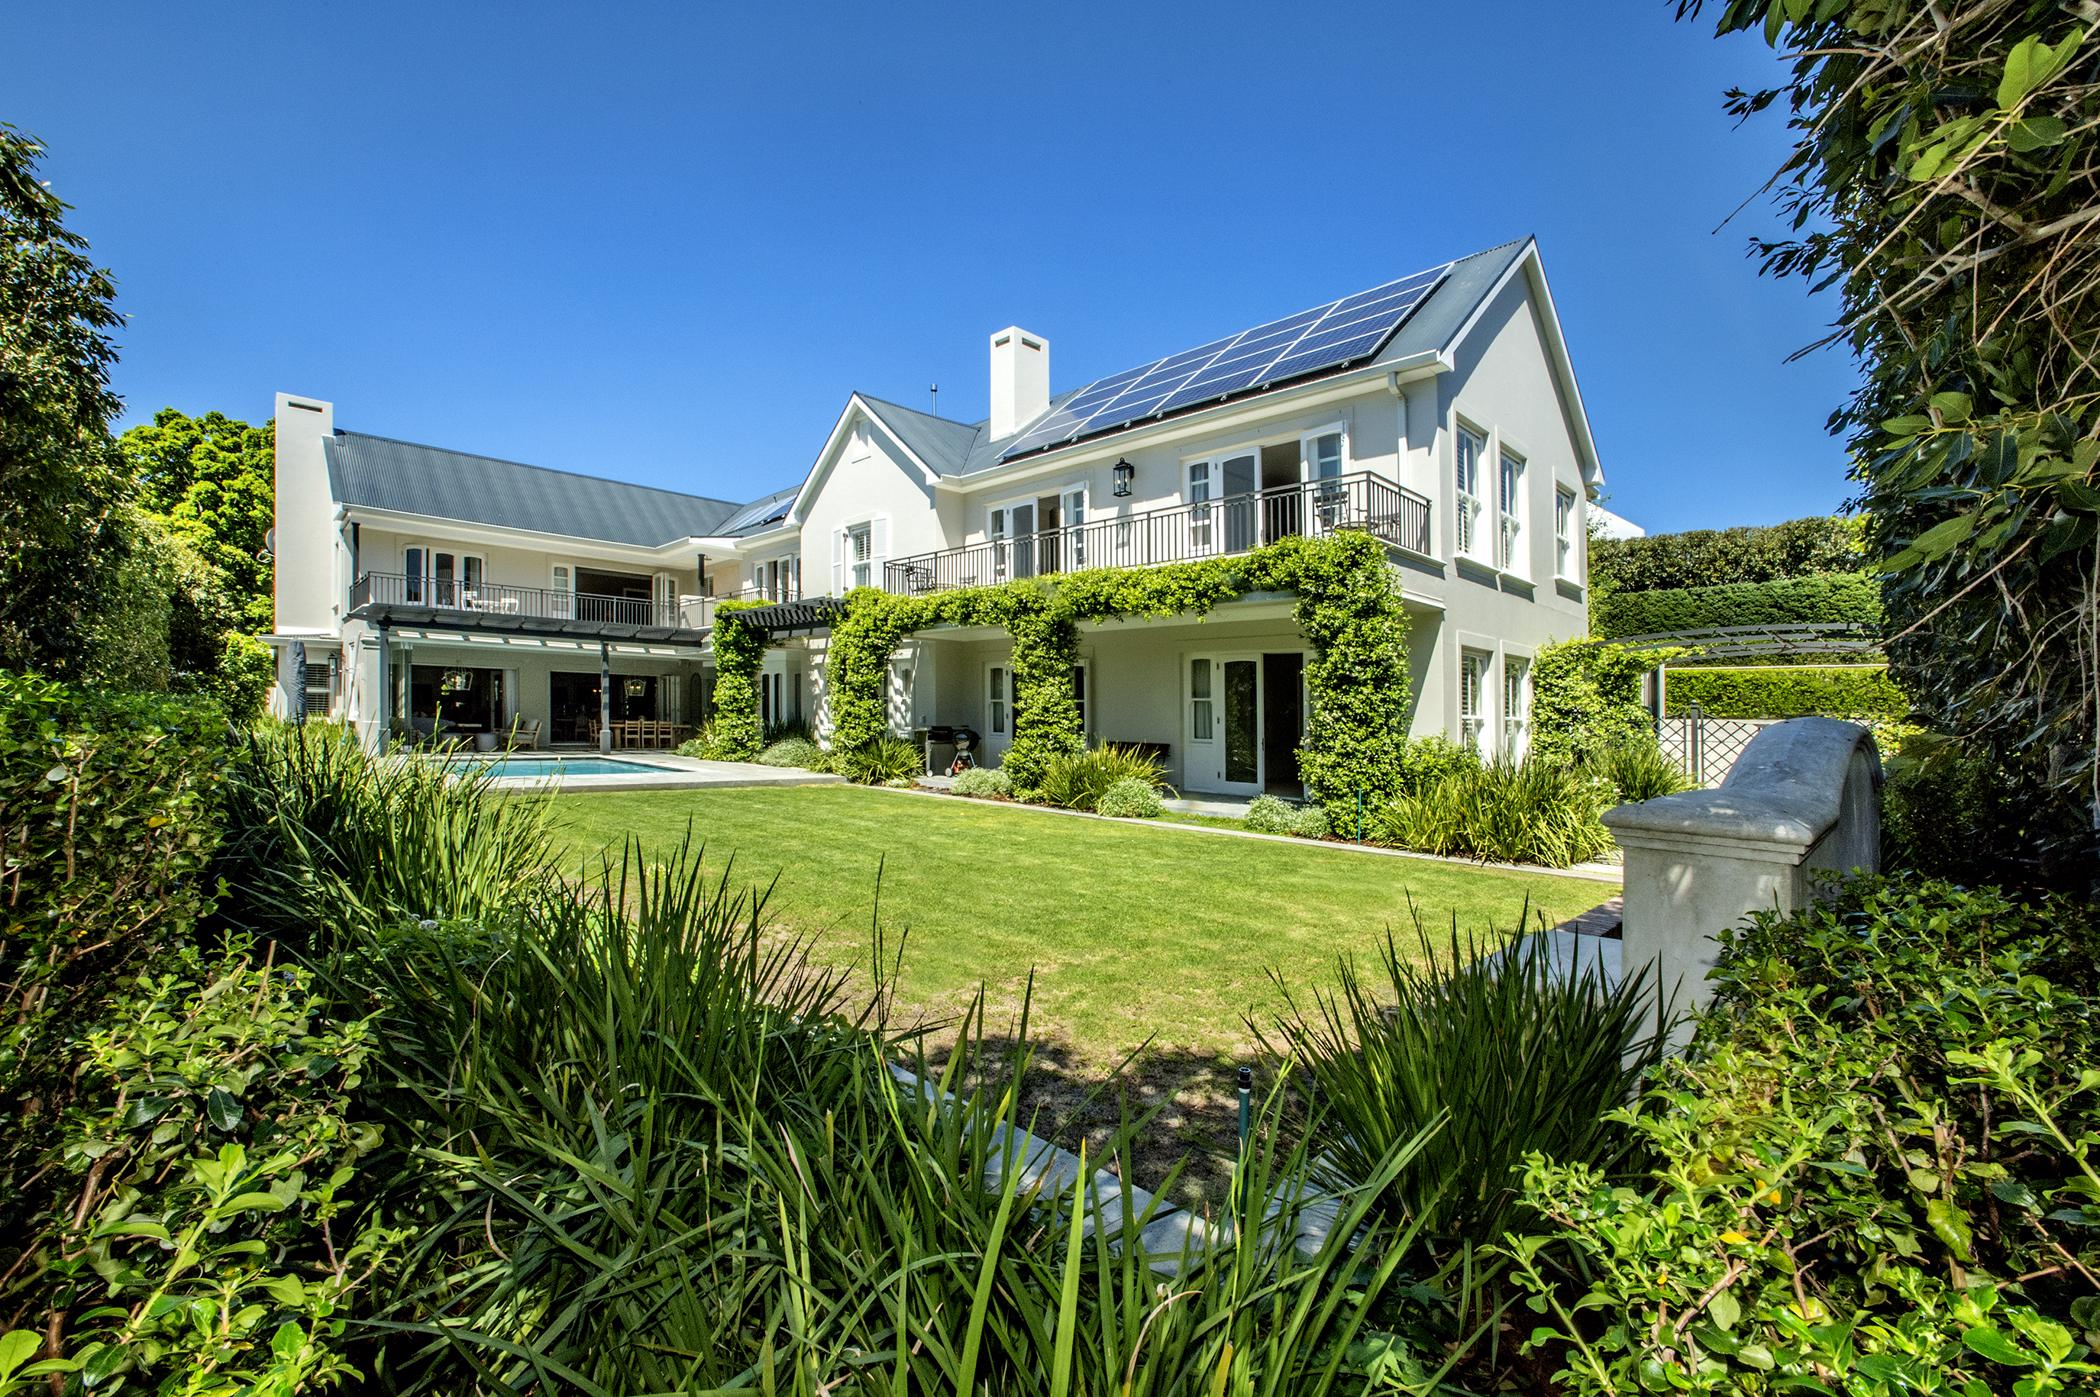 6 bedroom house for sale in Claremont Upper